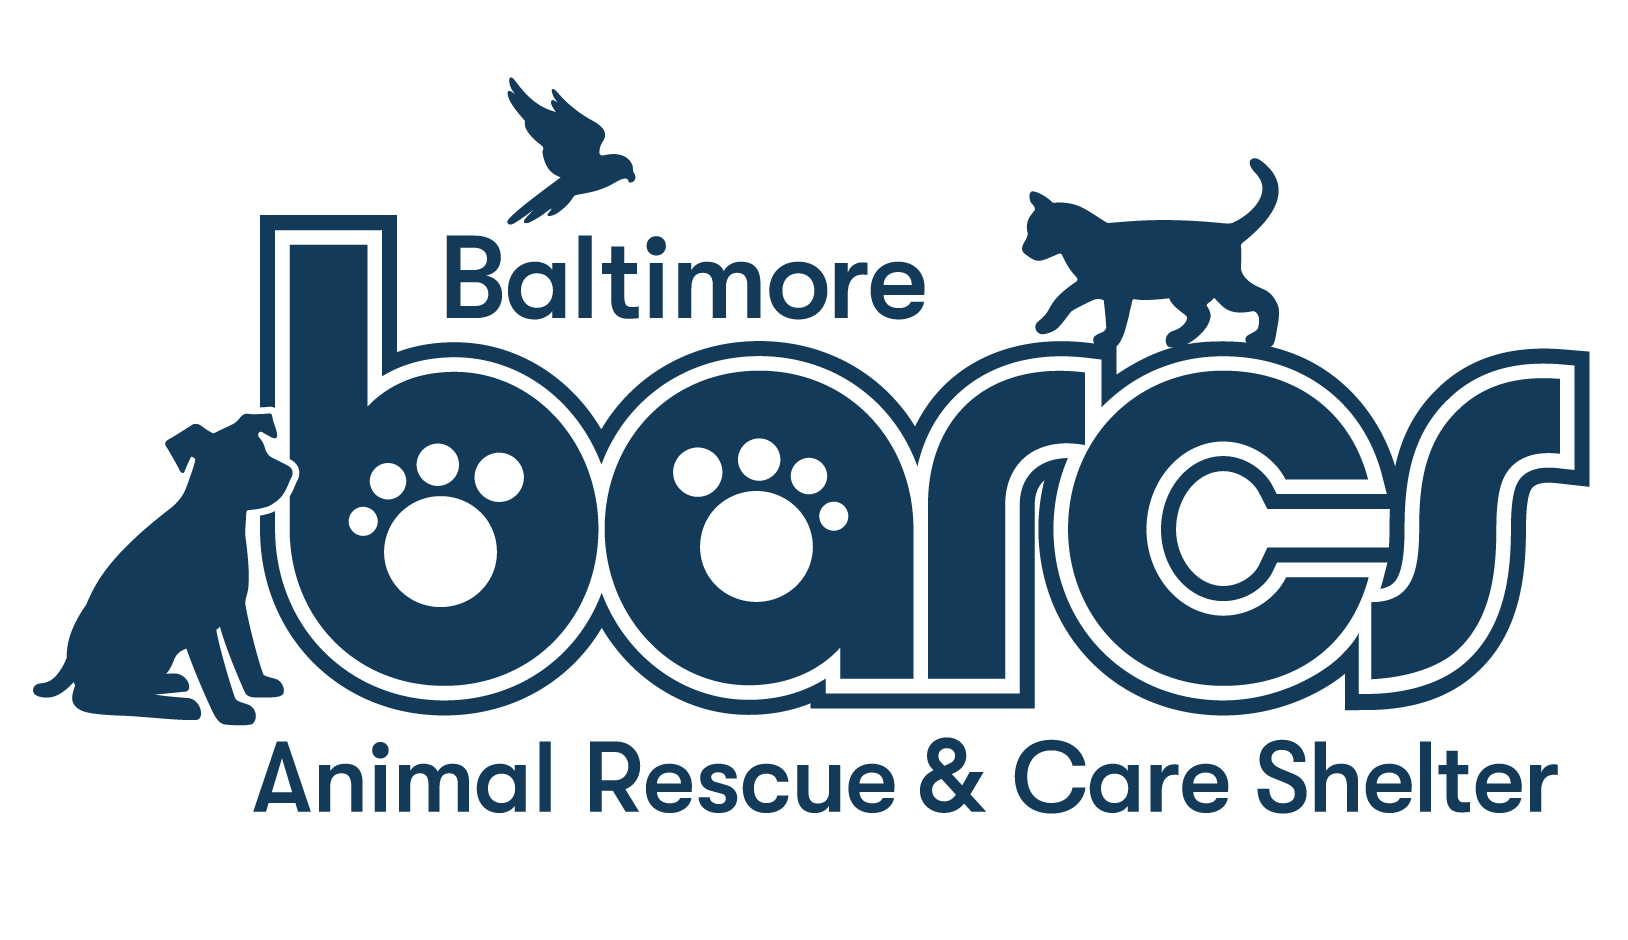 Baltimore Animal Rescue and Care Shelter (BARCS) banner